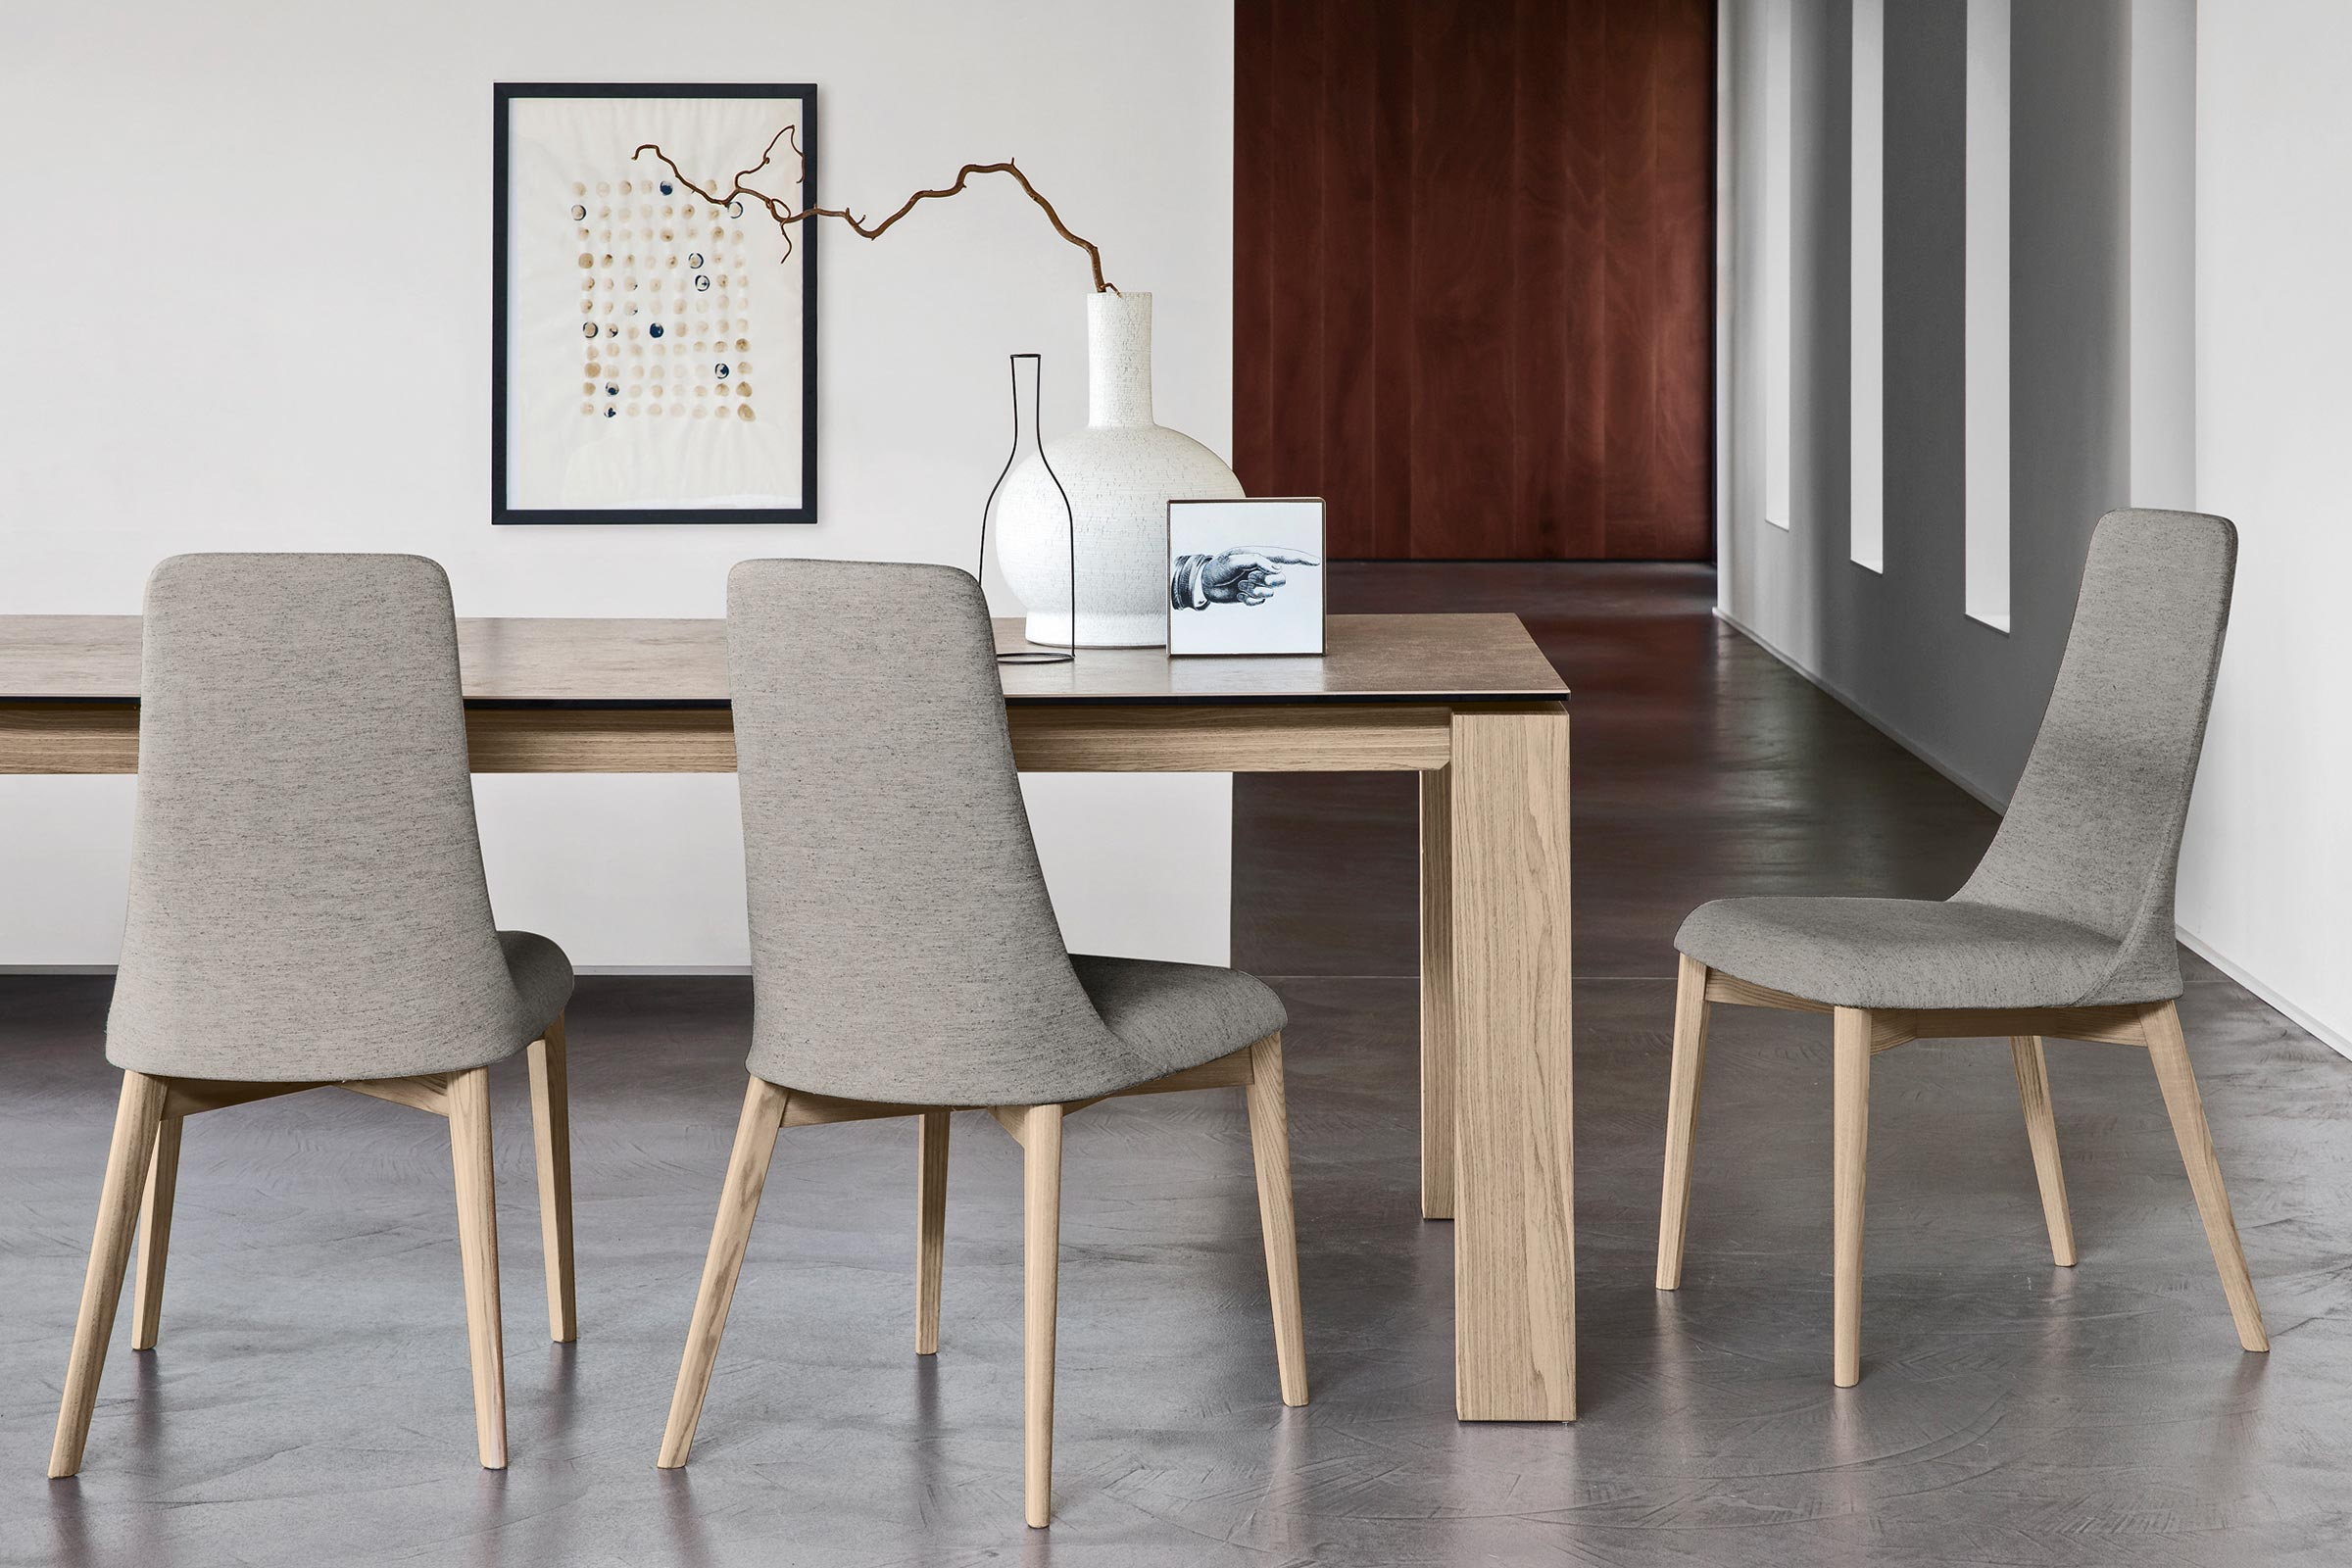 Calligaris Omnia Extendable Contemporary Dining Table Large Seats 8 10 Semi Automatic Telescopic Extension System Cs4058 R 180 Calligaris Toronto